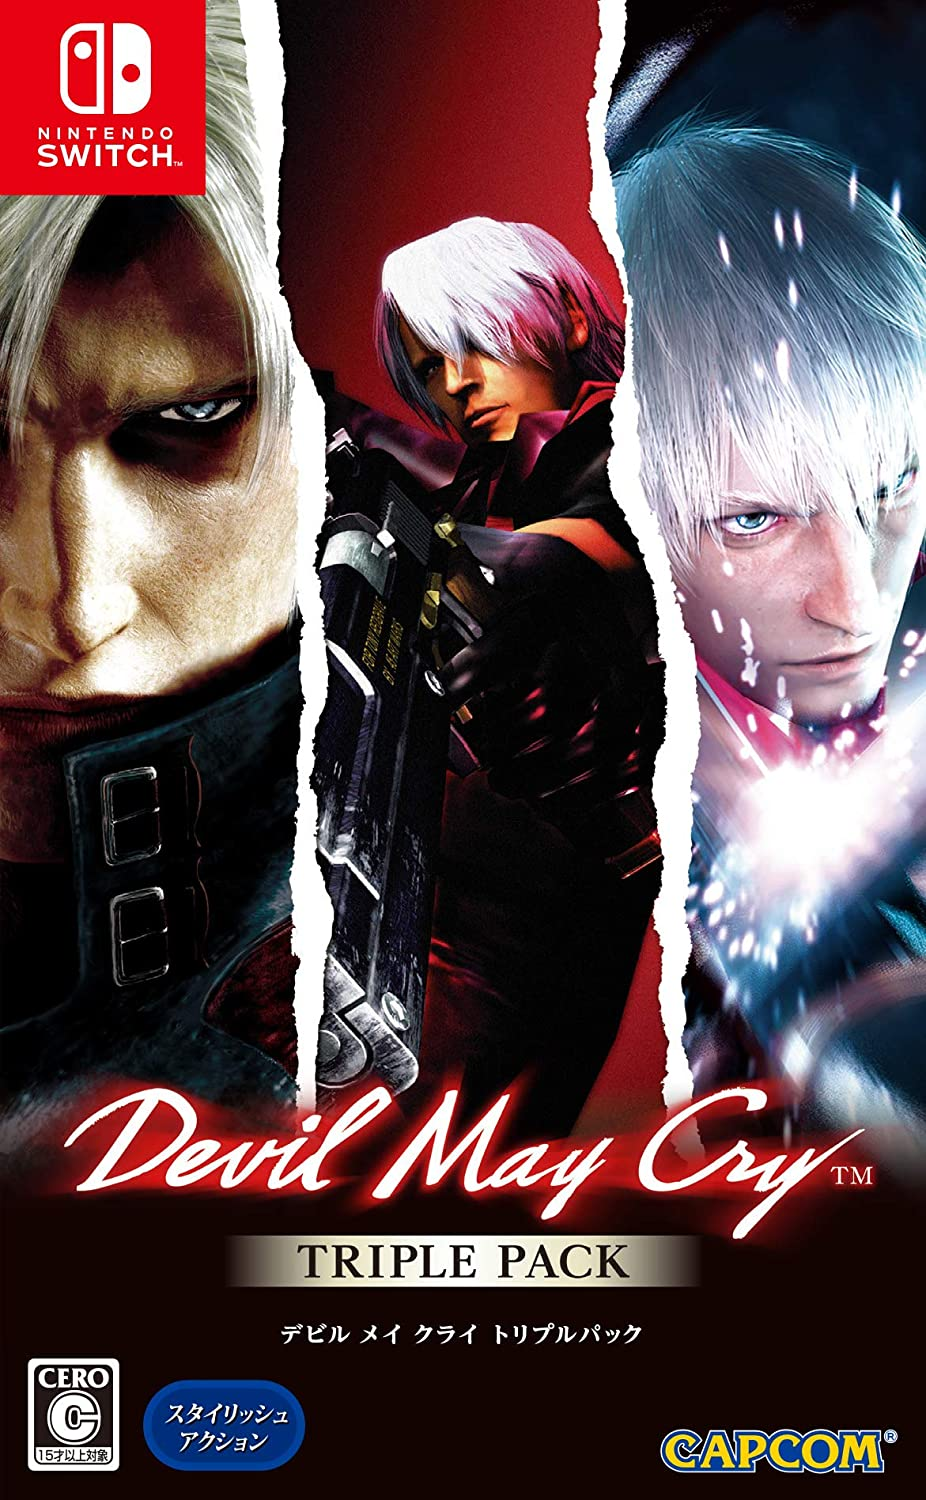 Amazon Com Devil May Cry Triple Pack Switch Amazon Co Jp限定 オリジナルデジタル壁紙 Pc スマホ 配信 付 Video Games